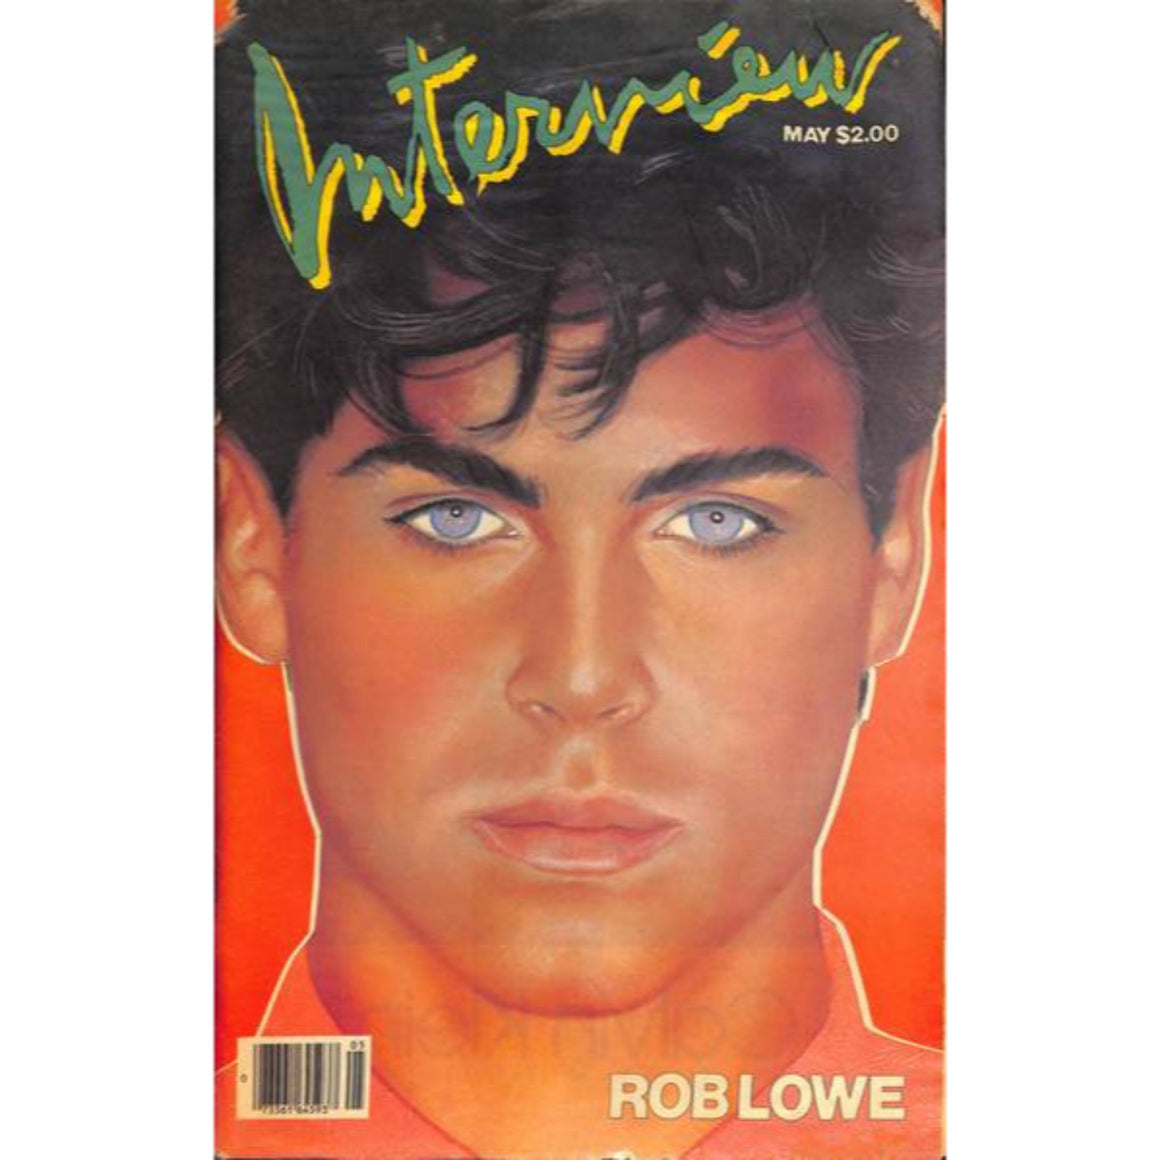 Andy Warhol's Interview Magazine: May w/ Rob Lowe